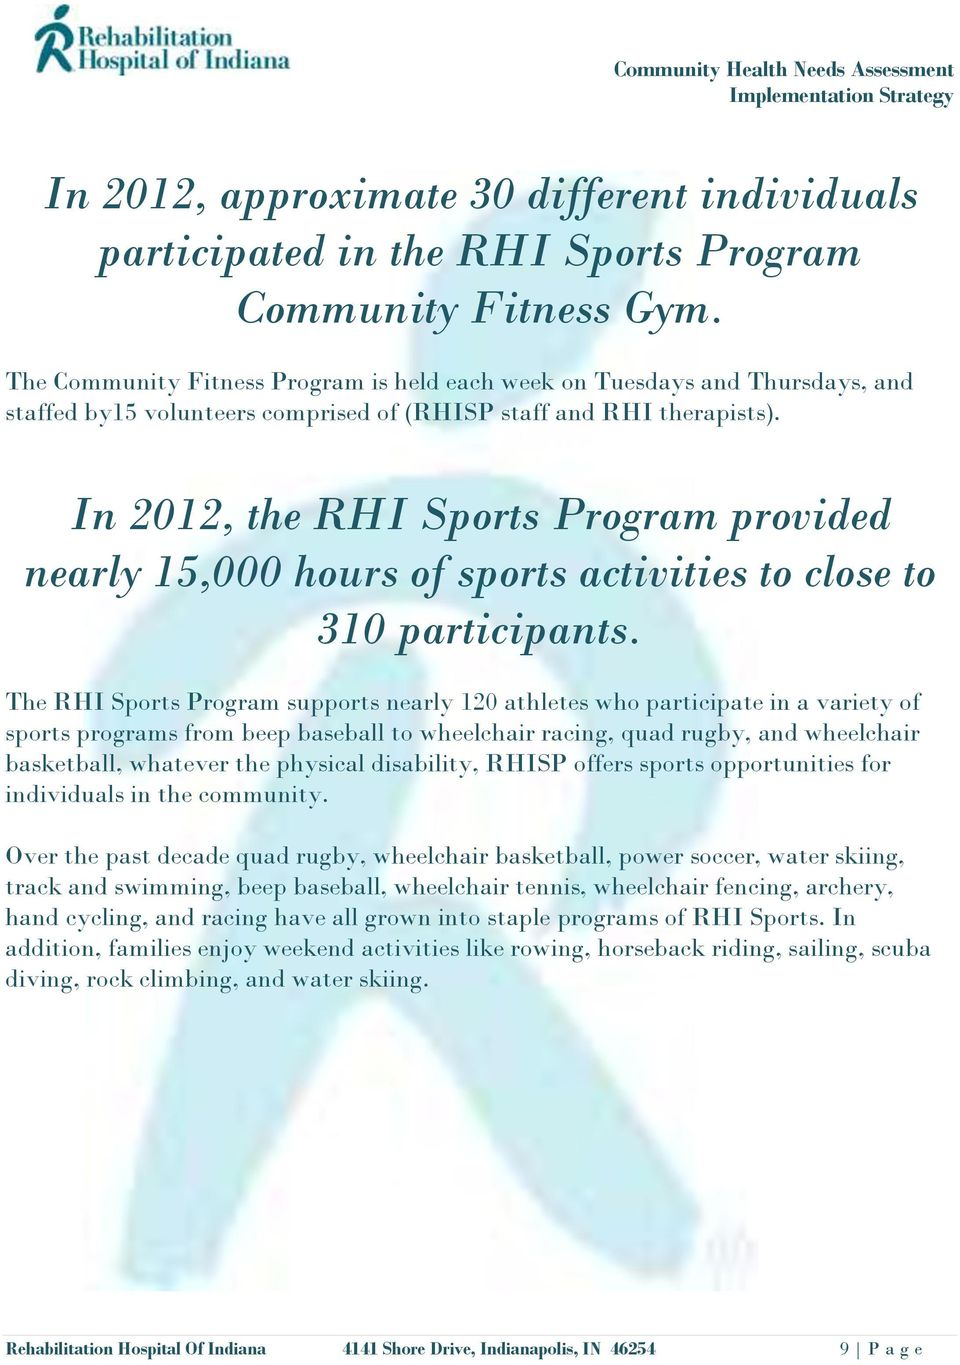 In 2012, the RHI Sports Program provided nearly 15,000 hours of sports activities to close to 310 participants.